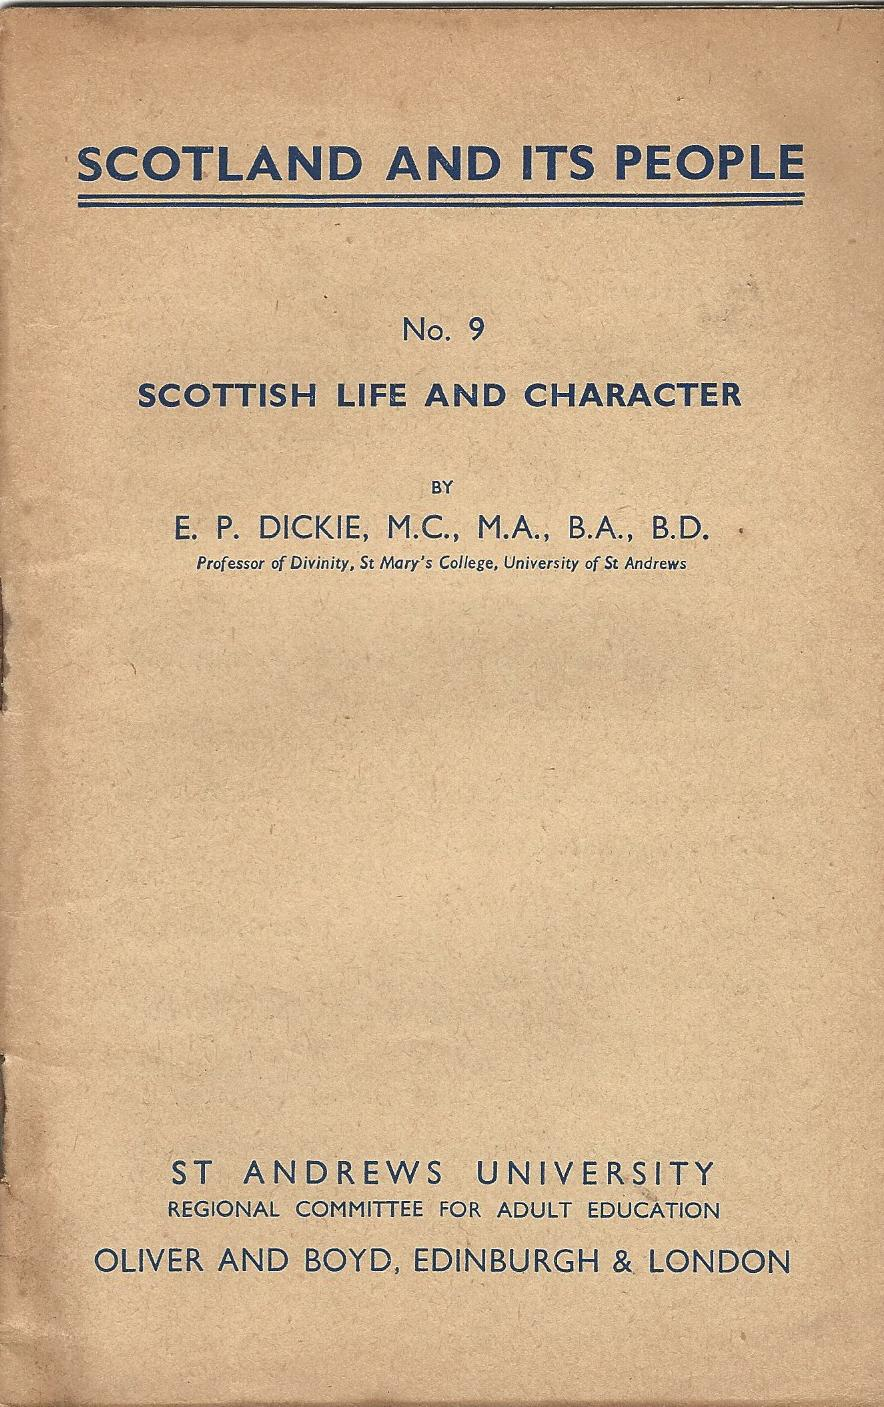 Image for Scotland and its People No. 9: Scottish Life and Character